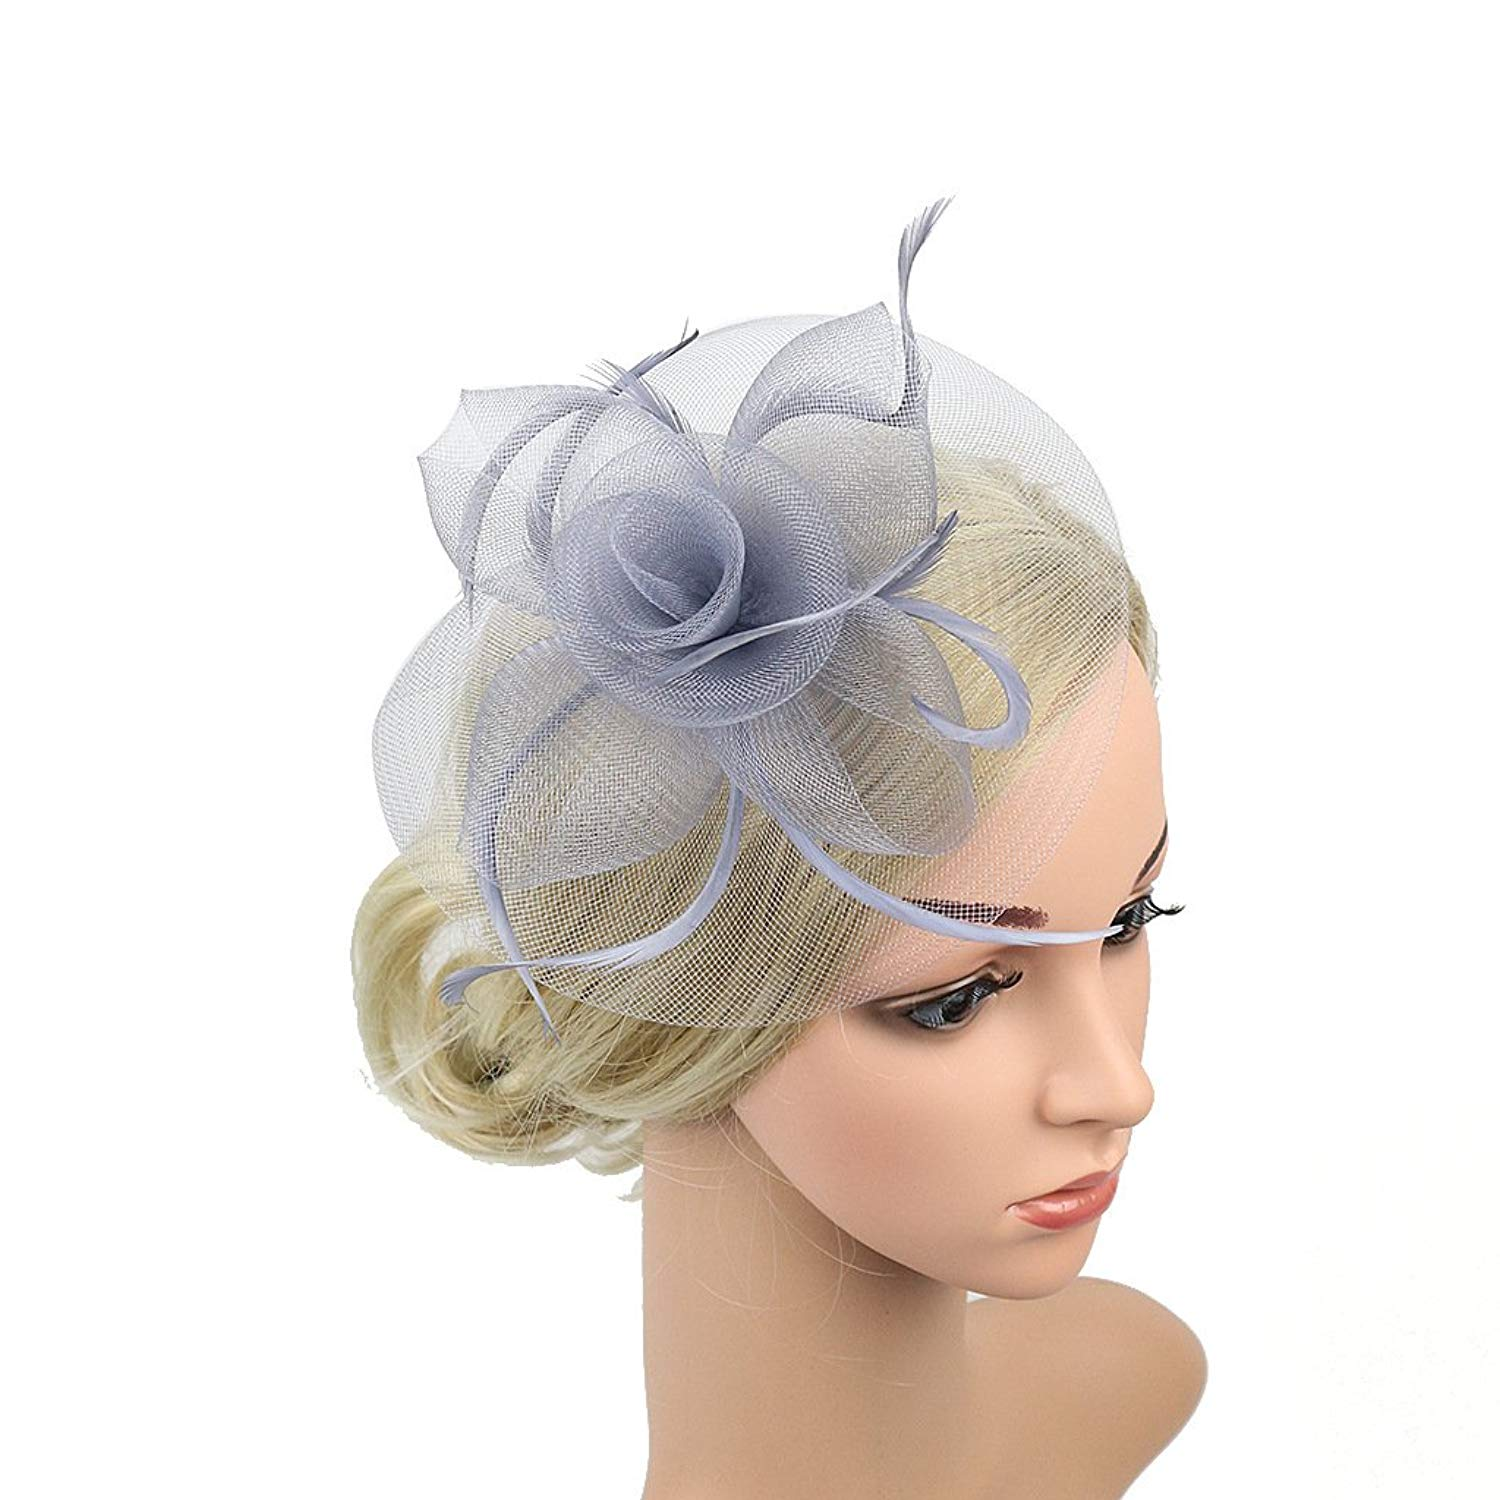 29ed955f Get Quotations · Sunzeus Flowers Bridal Hats Wedding Accessories Feathers  Women's Hats Fascinators